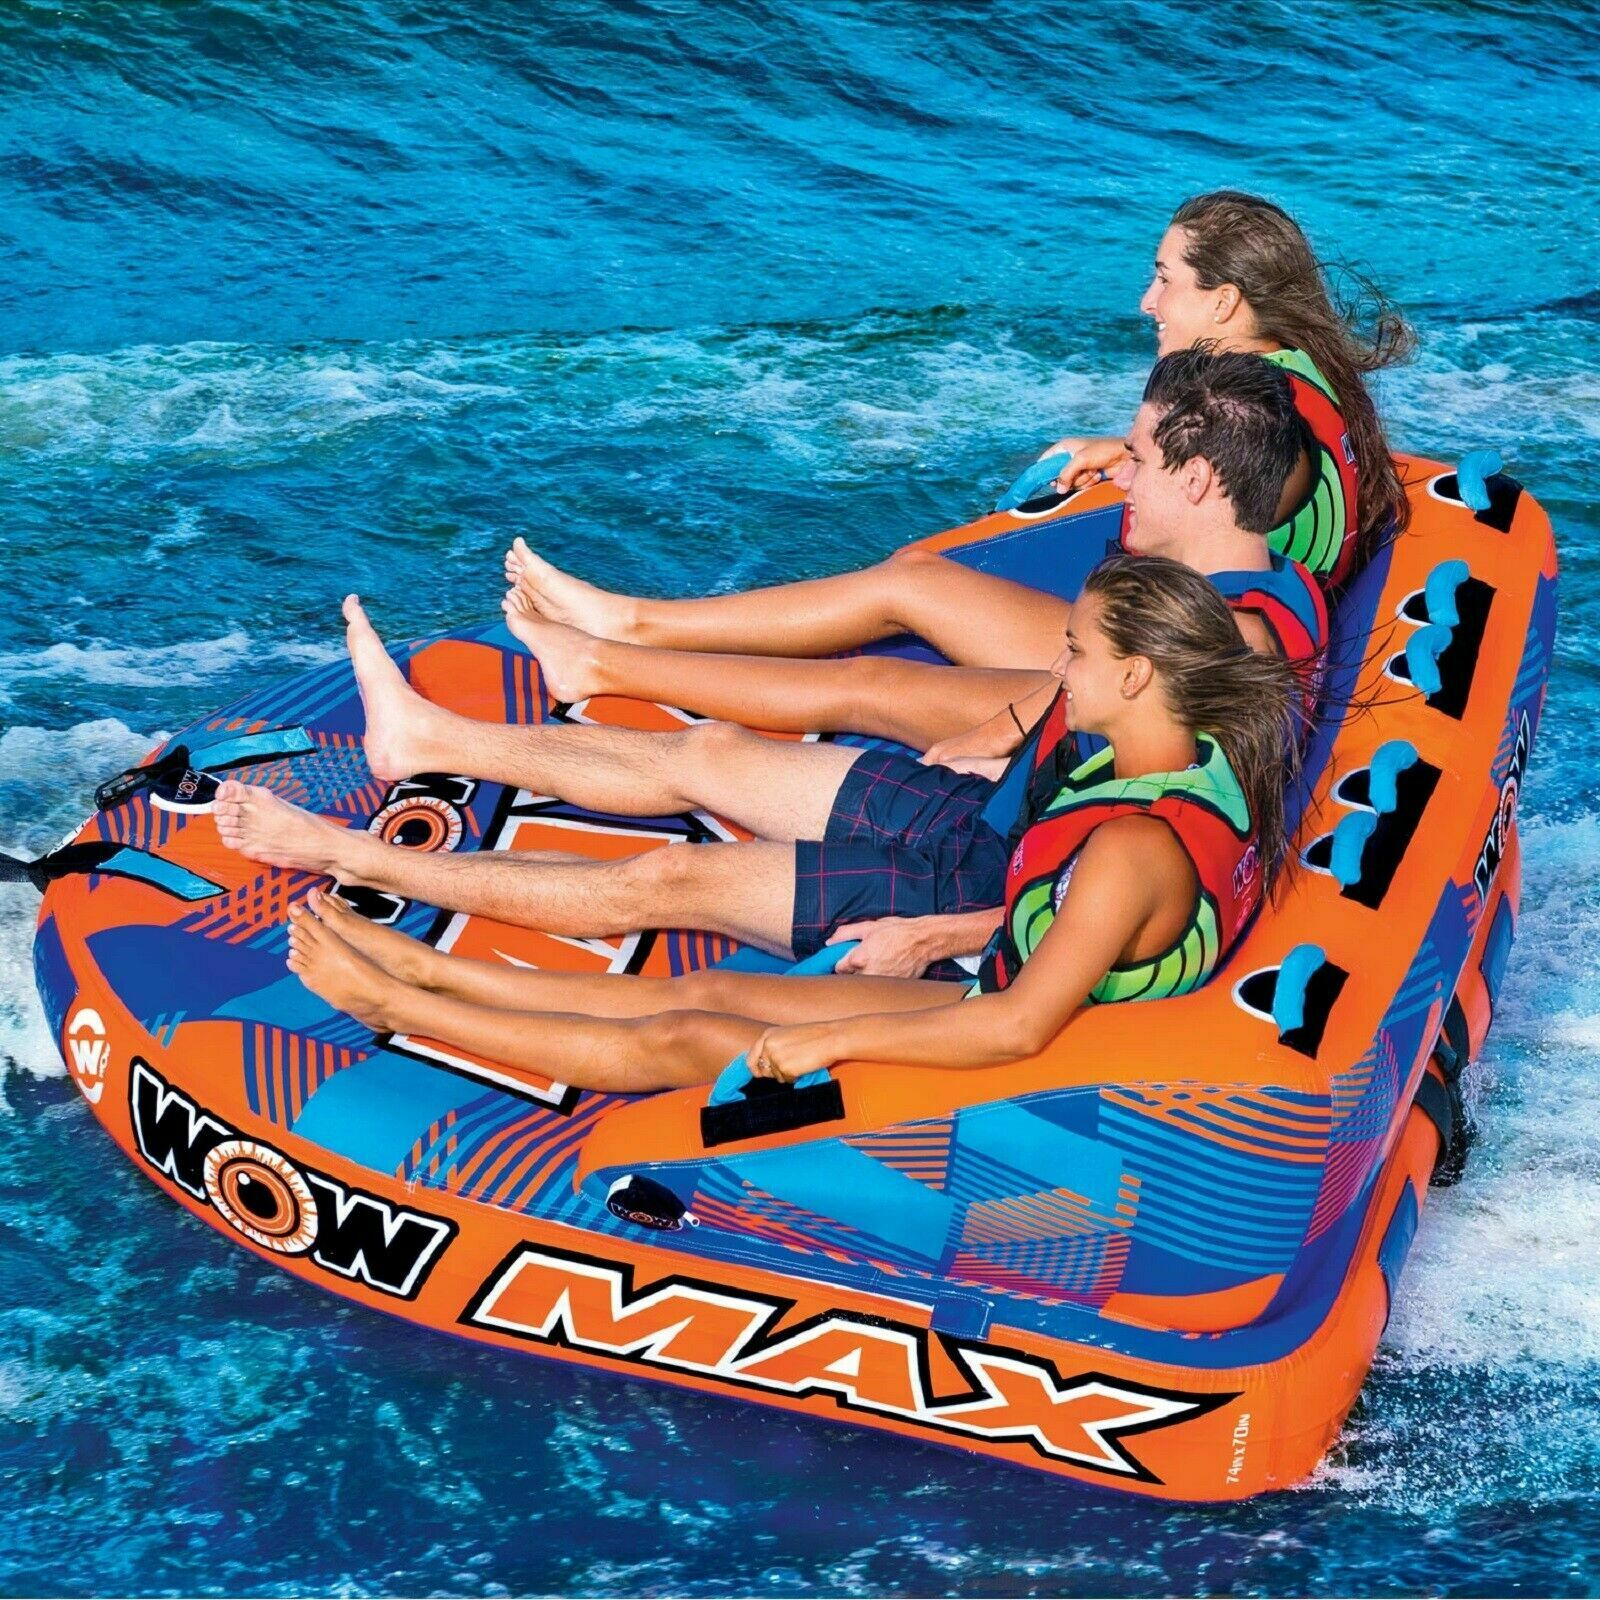 Image 3 - WOW MAX 1, 2 or 3 Person Inflatable Towable Tube Boat Water Raft Float FAST SHIP